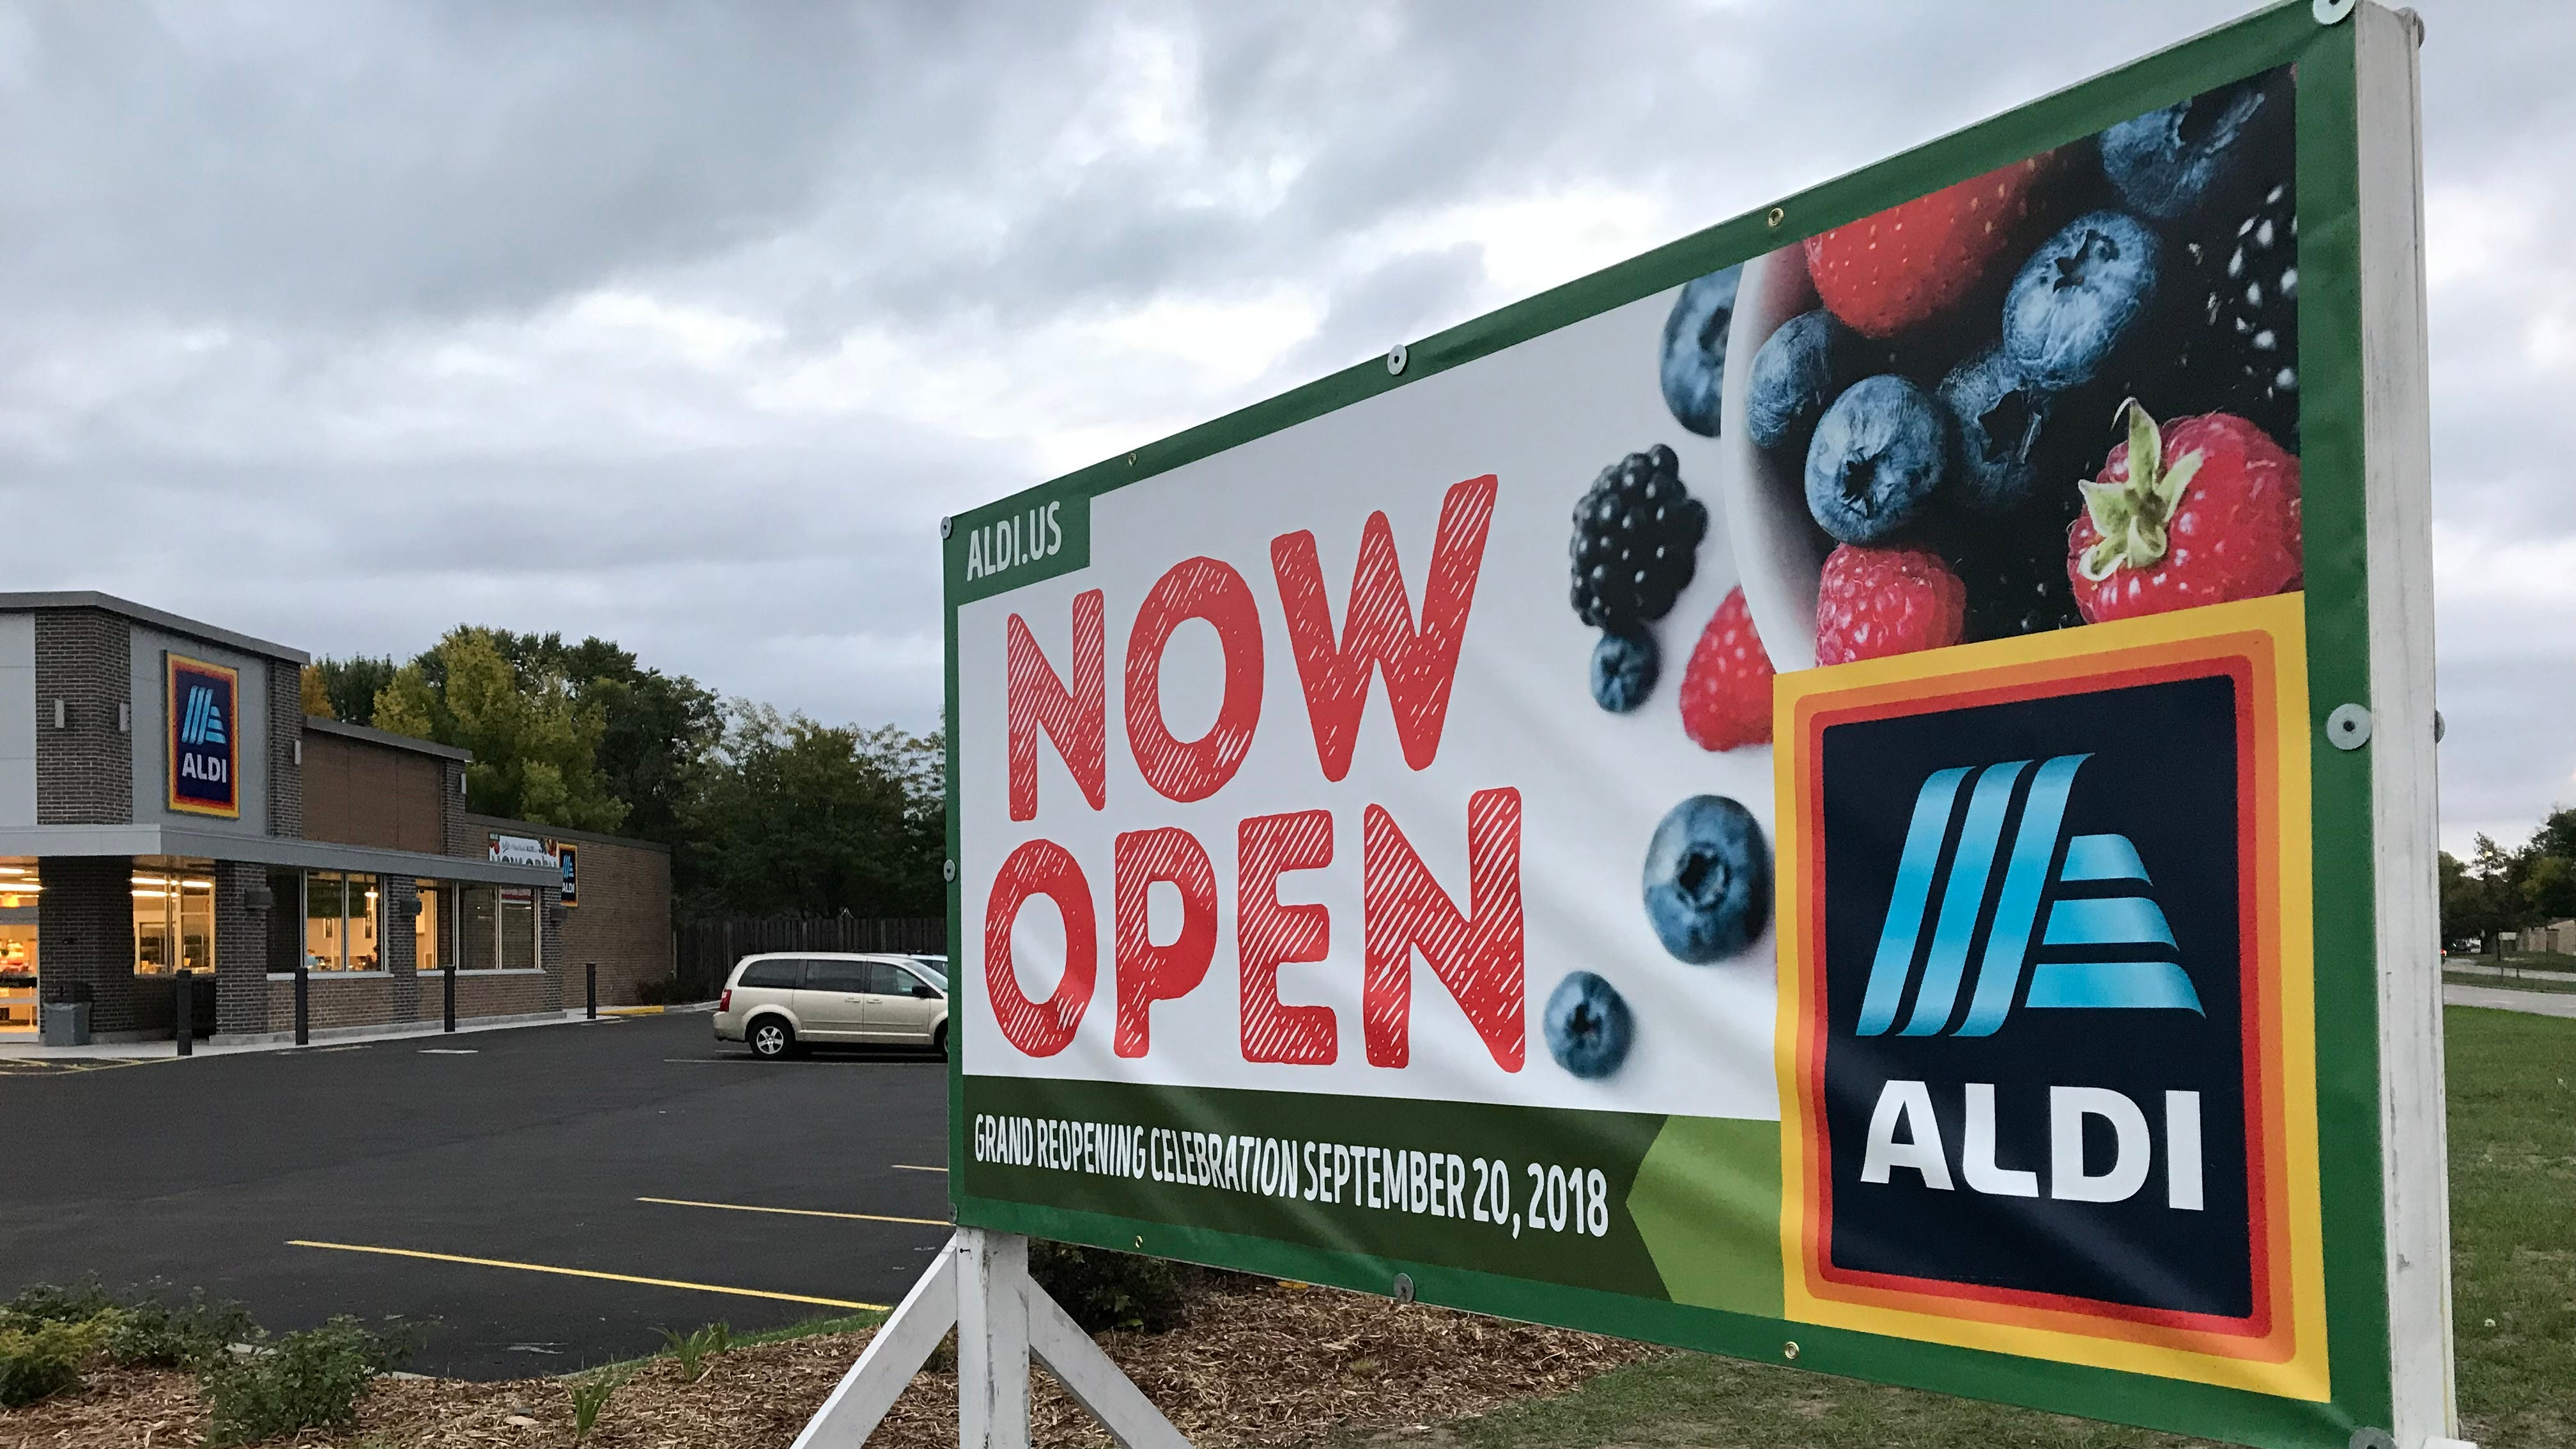 Younkers, Aldi, Dunkin' Donuts in this week's Streetwise roundup